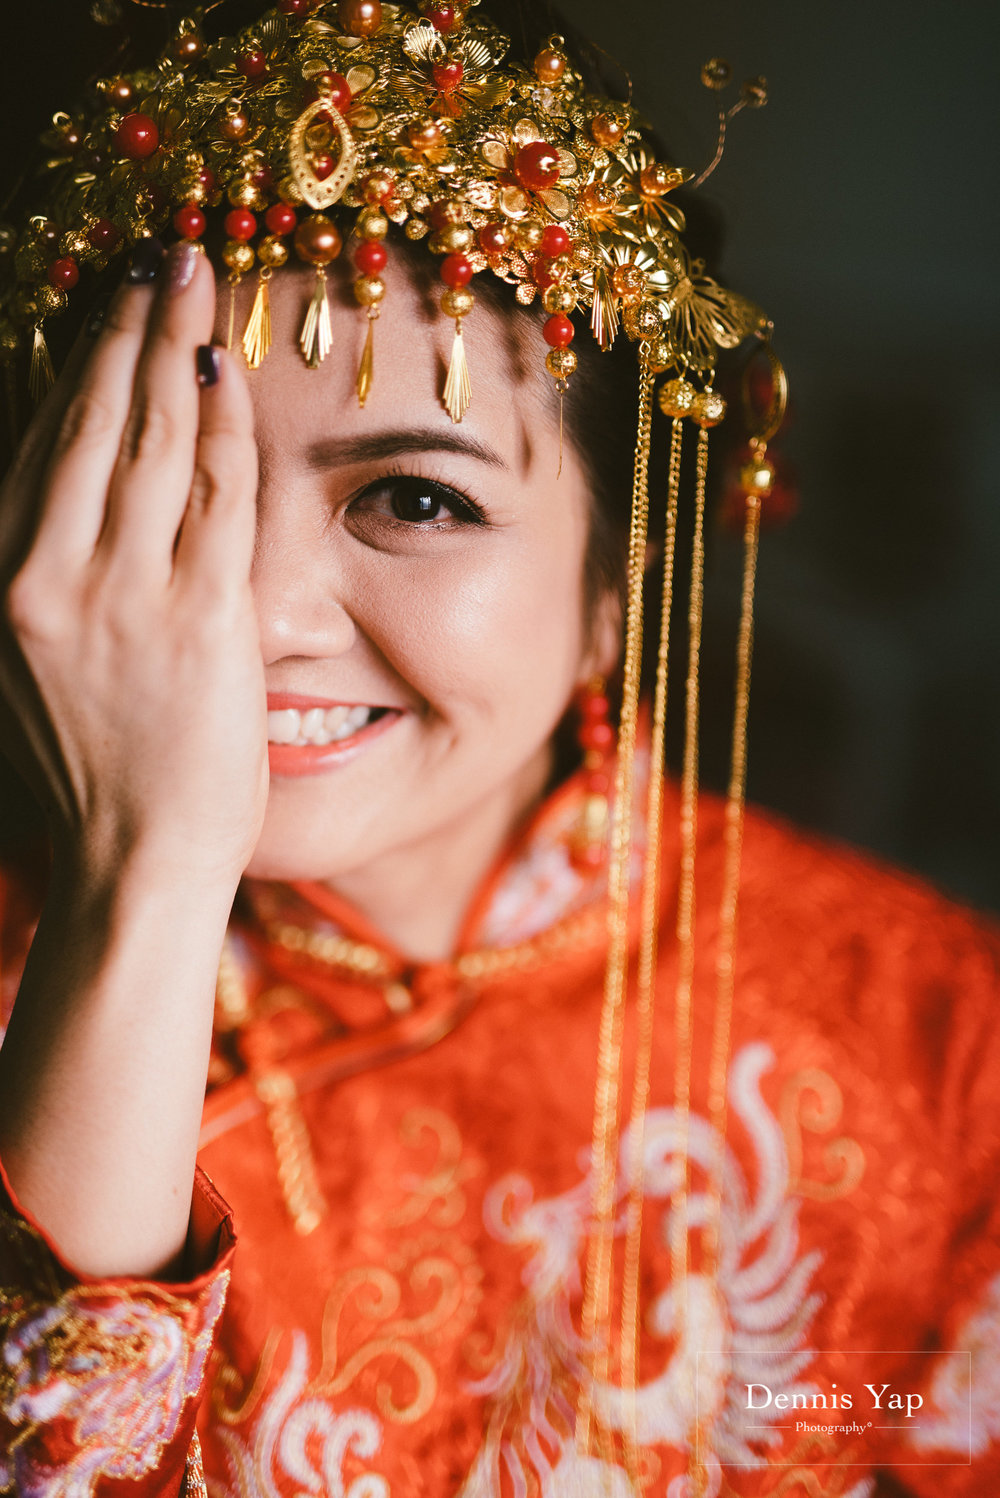 jimmy mellissa wedding day traditional chinese kua dennis yap photography-5.jpg